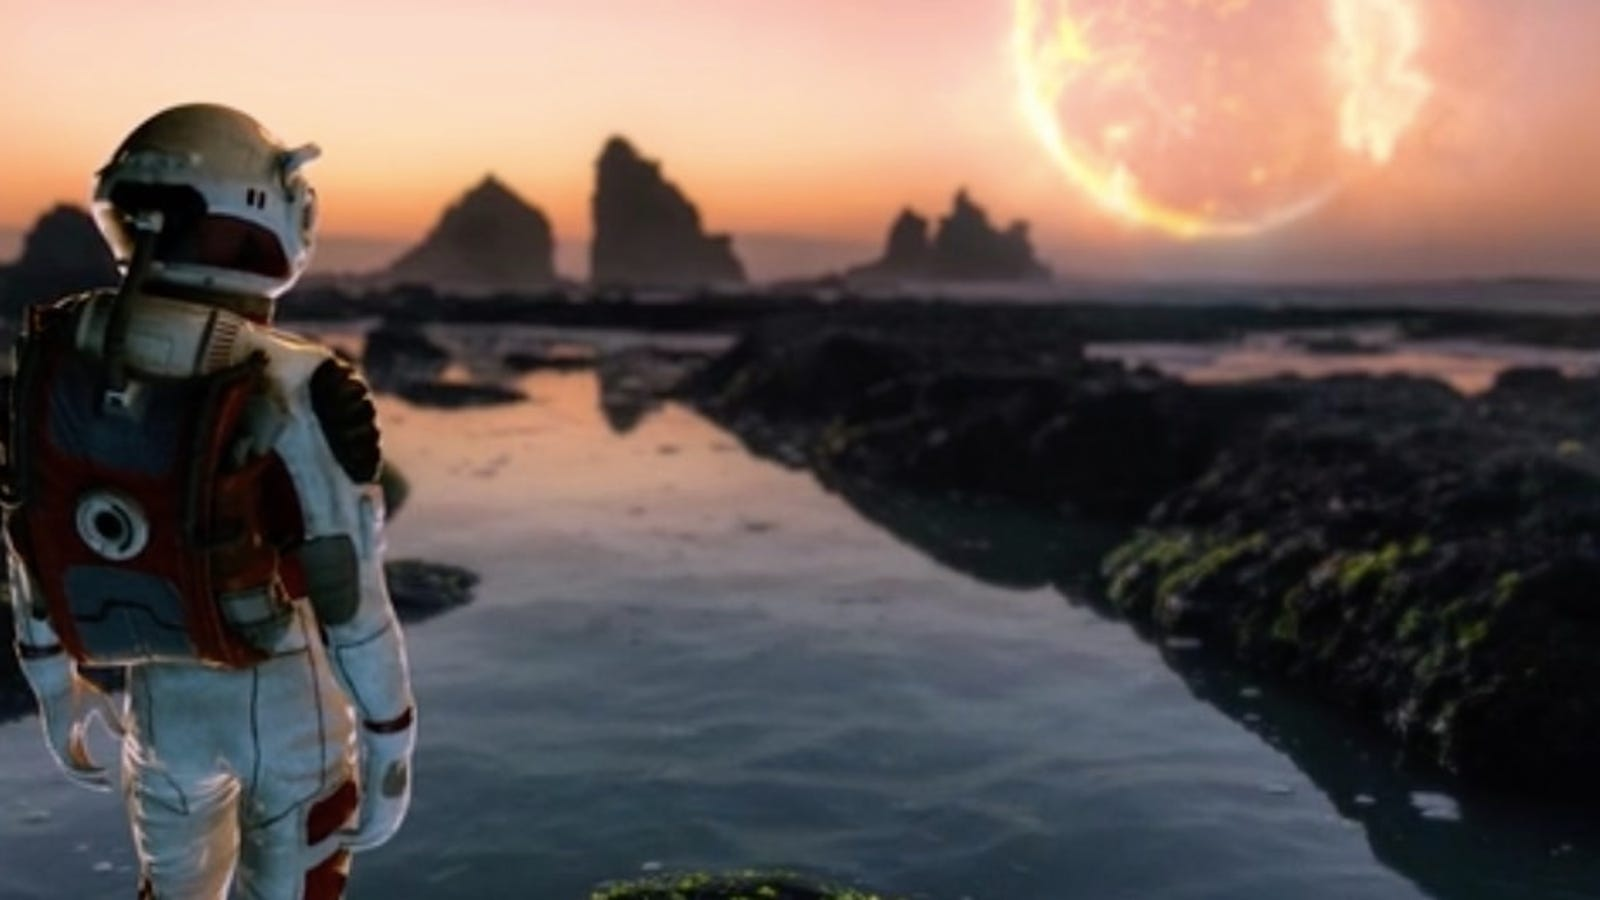 A Lonely Space Traveler Finds an Unexpected Lifeline in Sci-Fi Short Scavenger